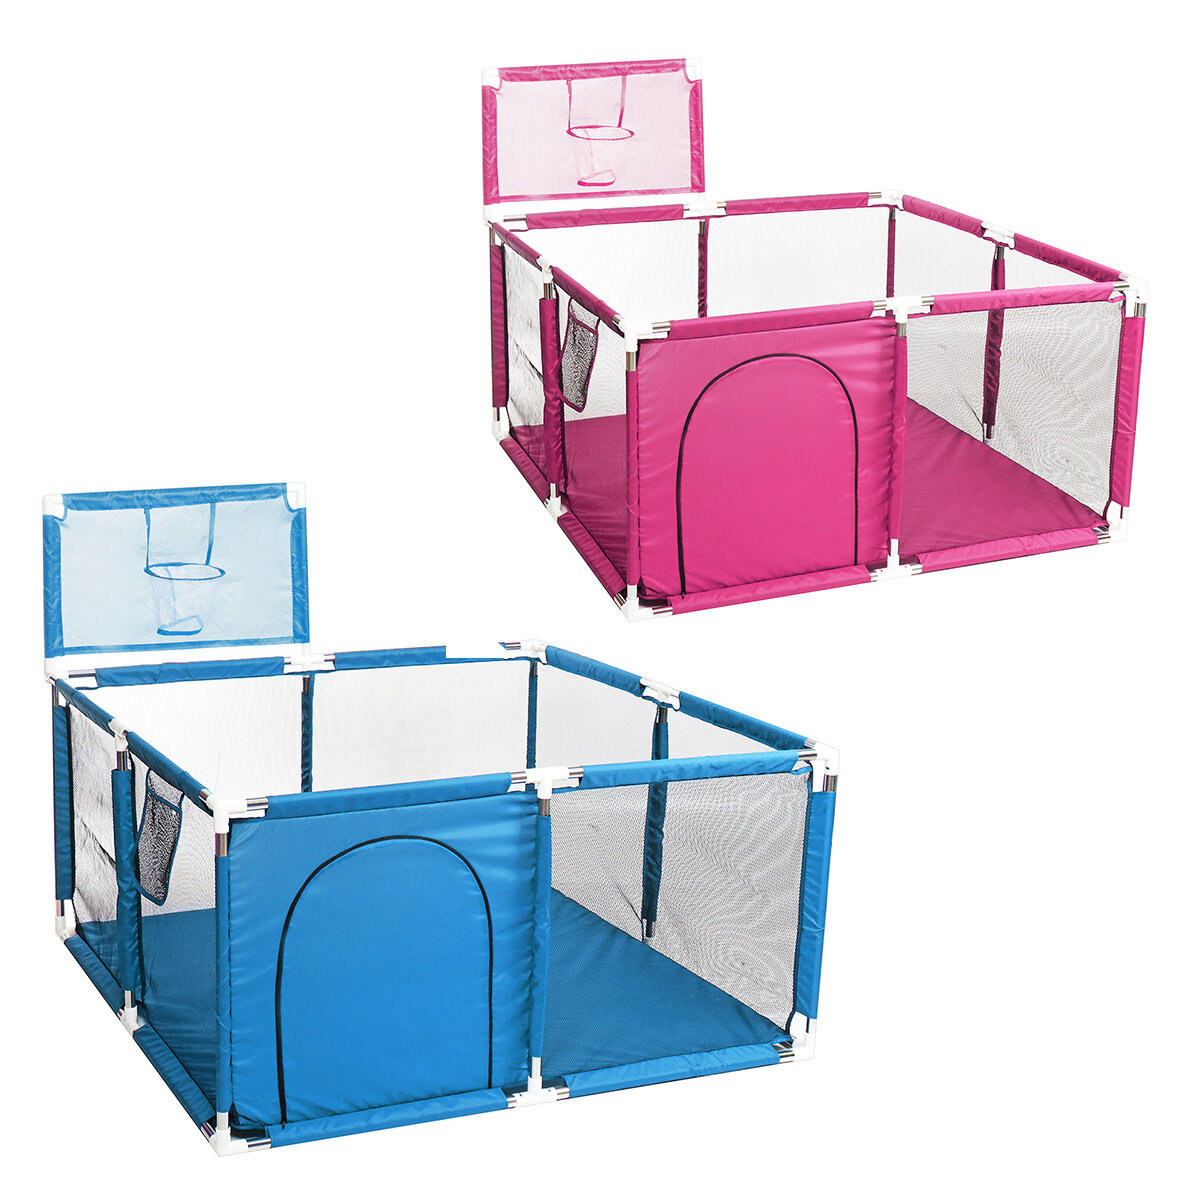 Millhouse Baby Toddler Playpen Interactive for Under 36 Months Kids Playing Learning Children Play Playard Ocean Ball Safety Gate 4 Panel Fence